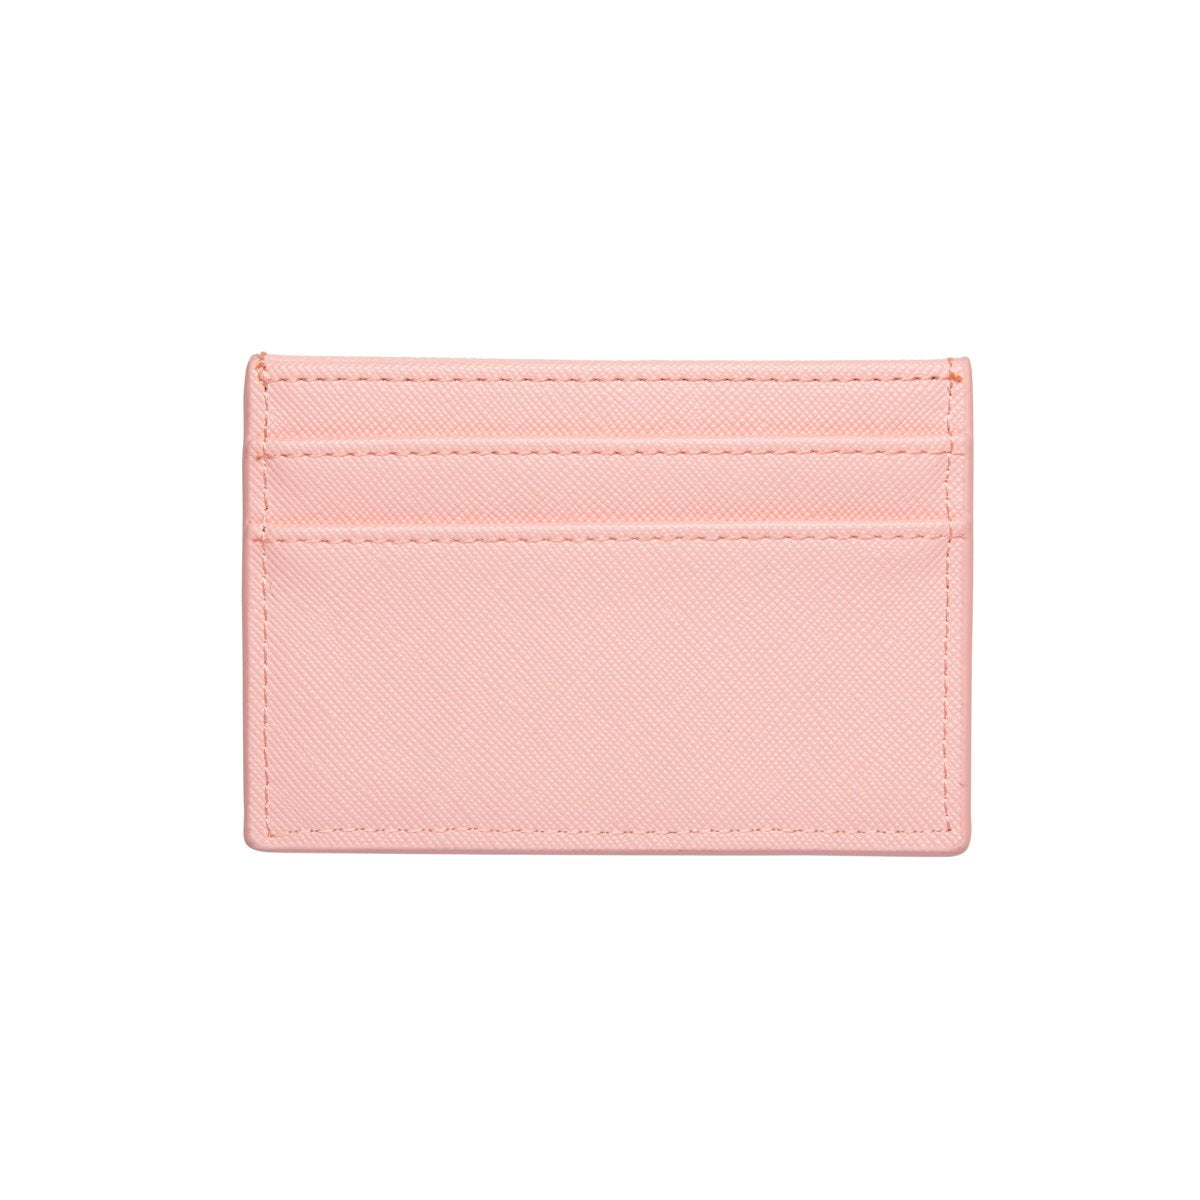 Porte-Cartes Clea Rose Quartz